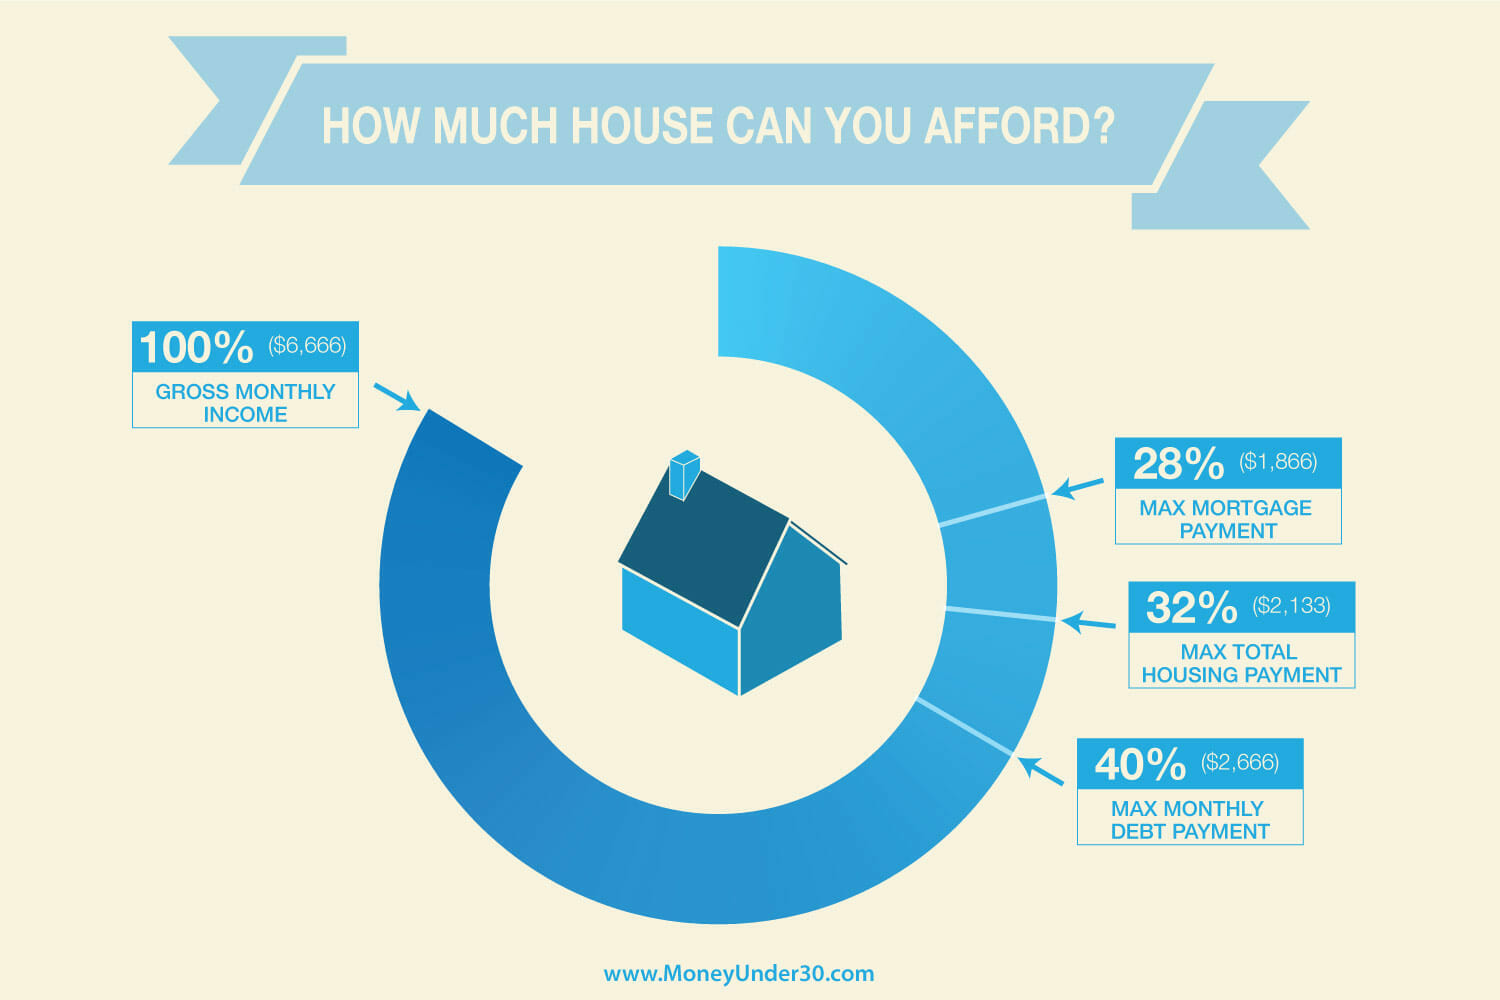 How much house can you afford - MoneyUnder30